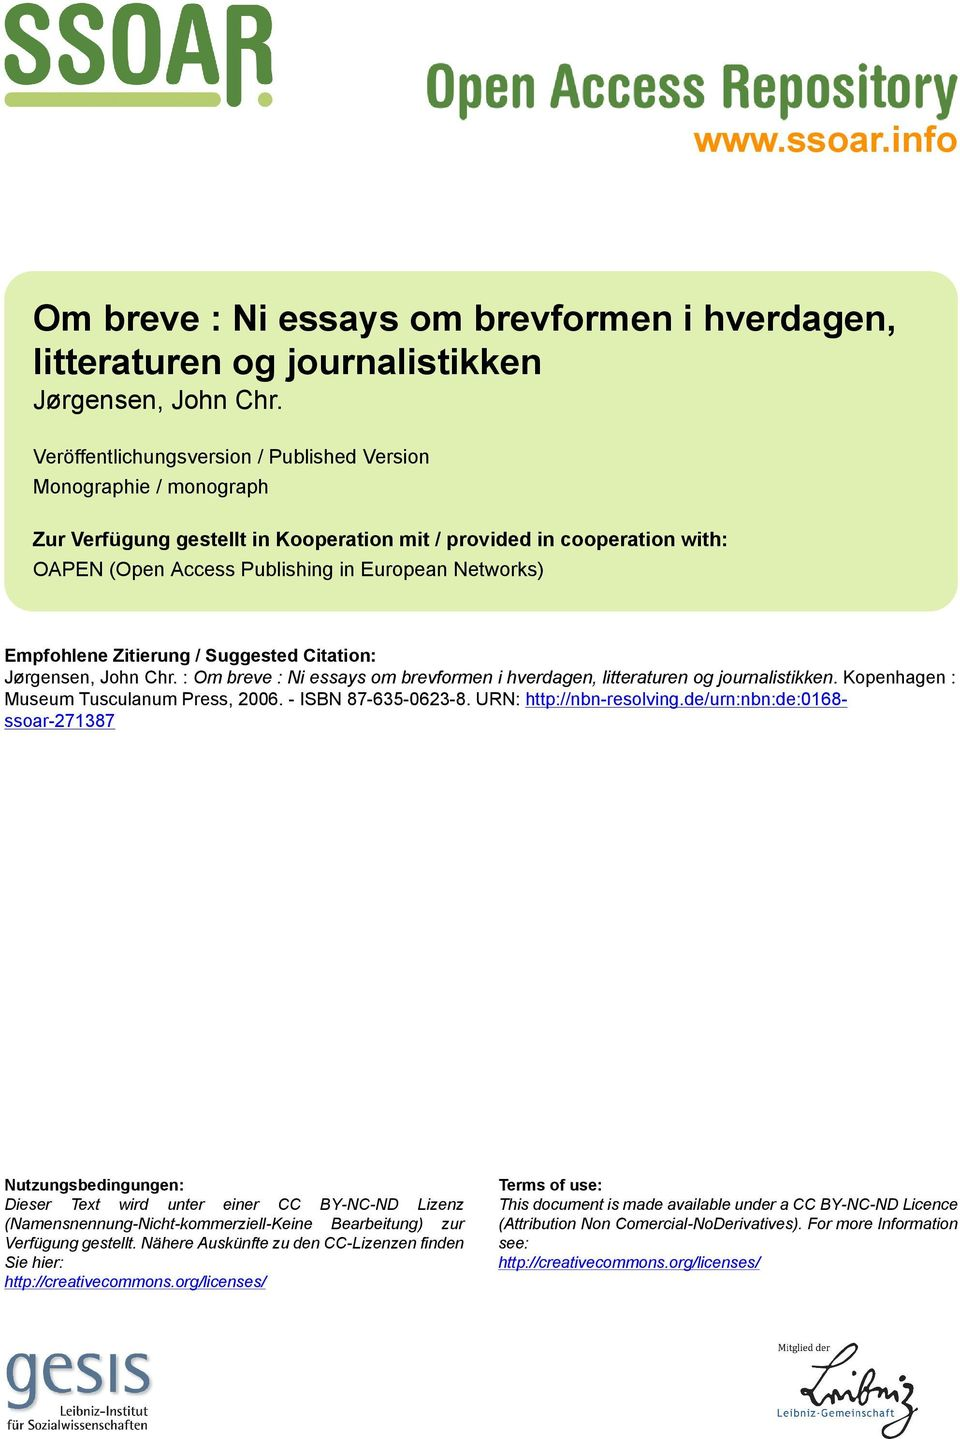 Empfohlene Zitierung / Suggested Citation: Jørgensen, John Chr. : Om breve : Ni essays om brevformen i hverdagen, litteraturen og journalistikken. Kopenhagen : Museum Tusculanum Press, 2006.